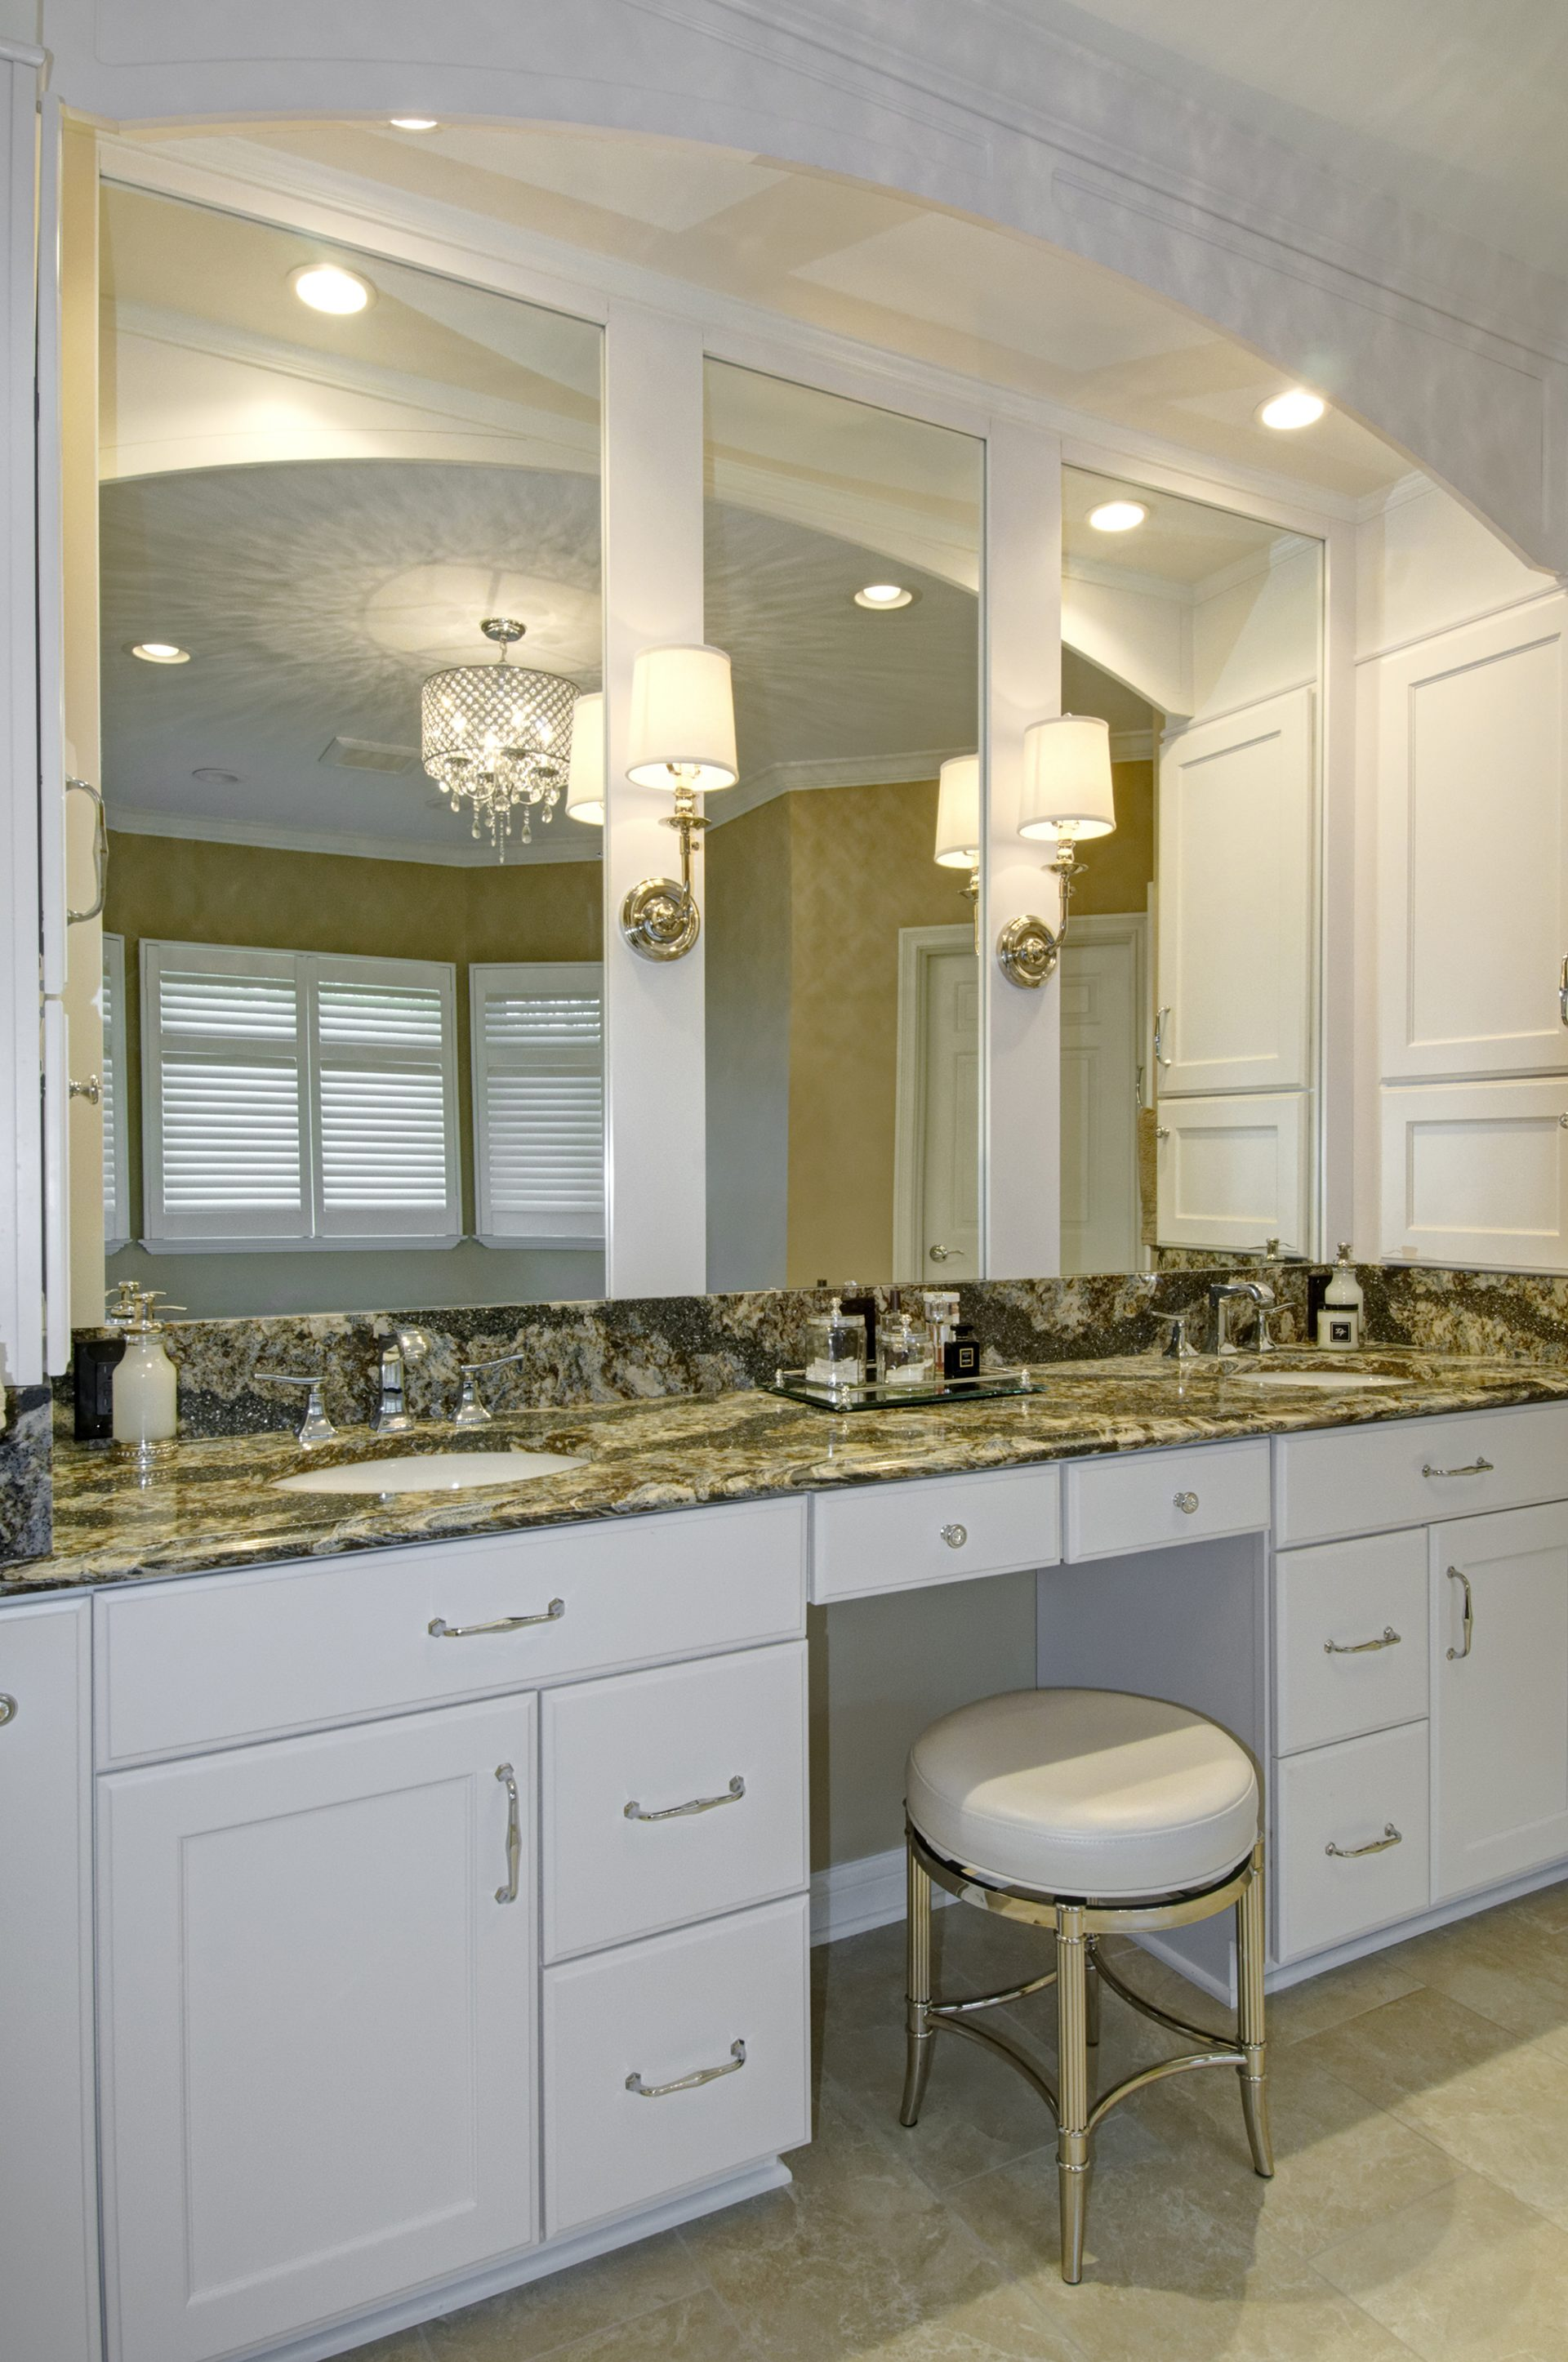 Master Bath, Dublin, Dave Fox, Remodel, cambria, quartz, dual vanity, double vanity, white cabinets, chandelier